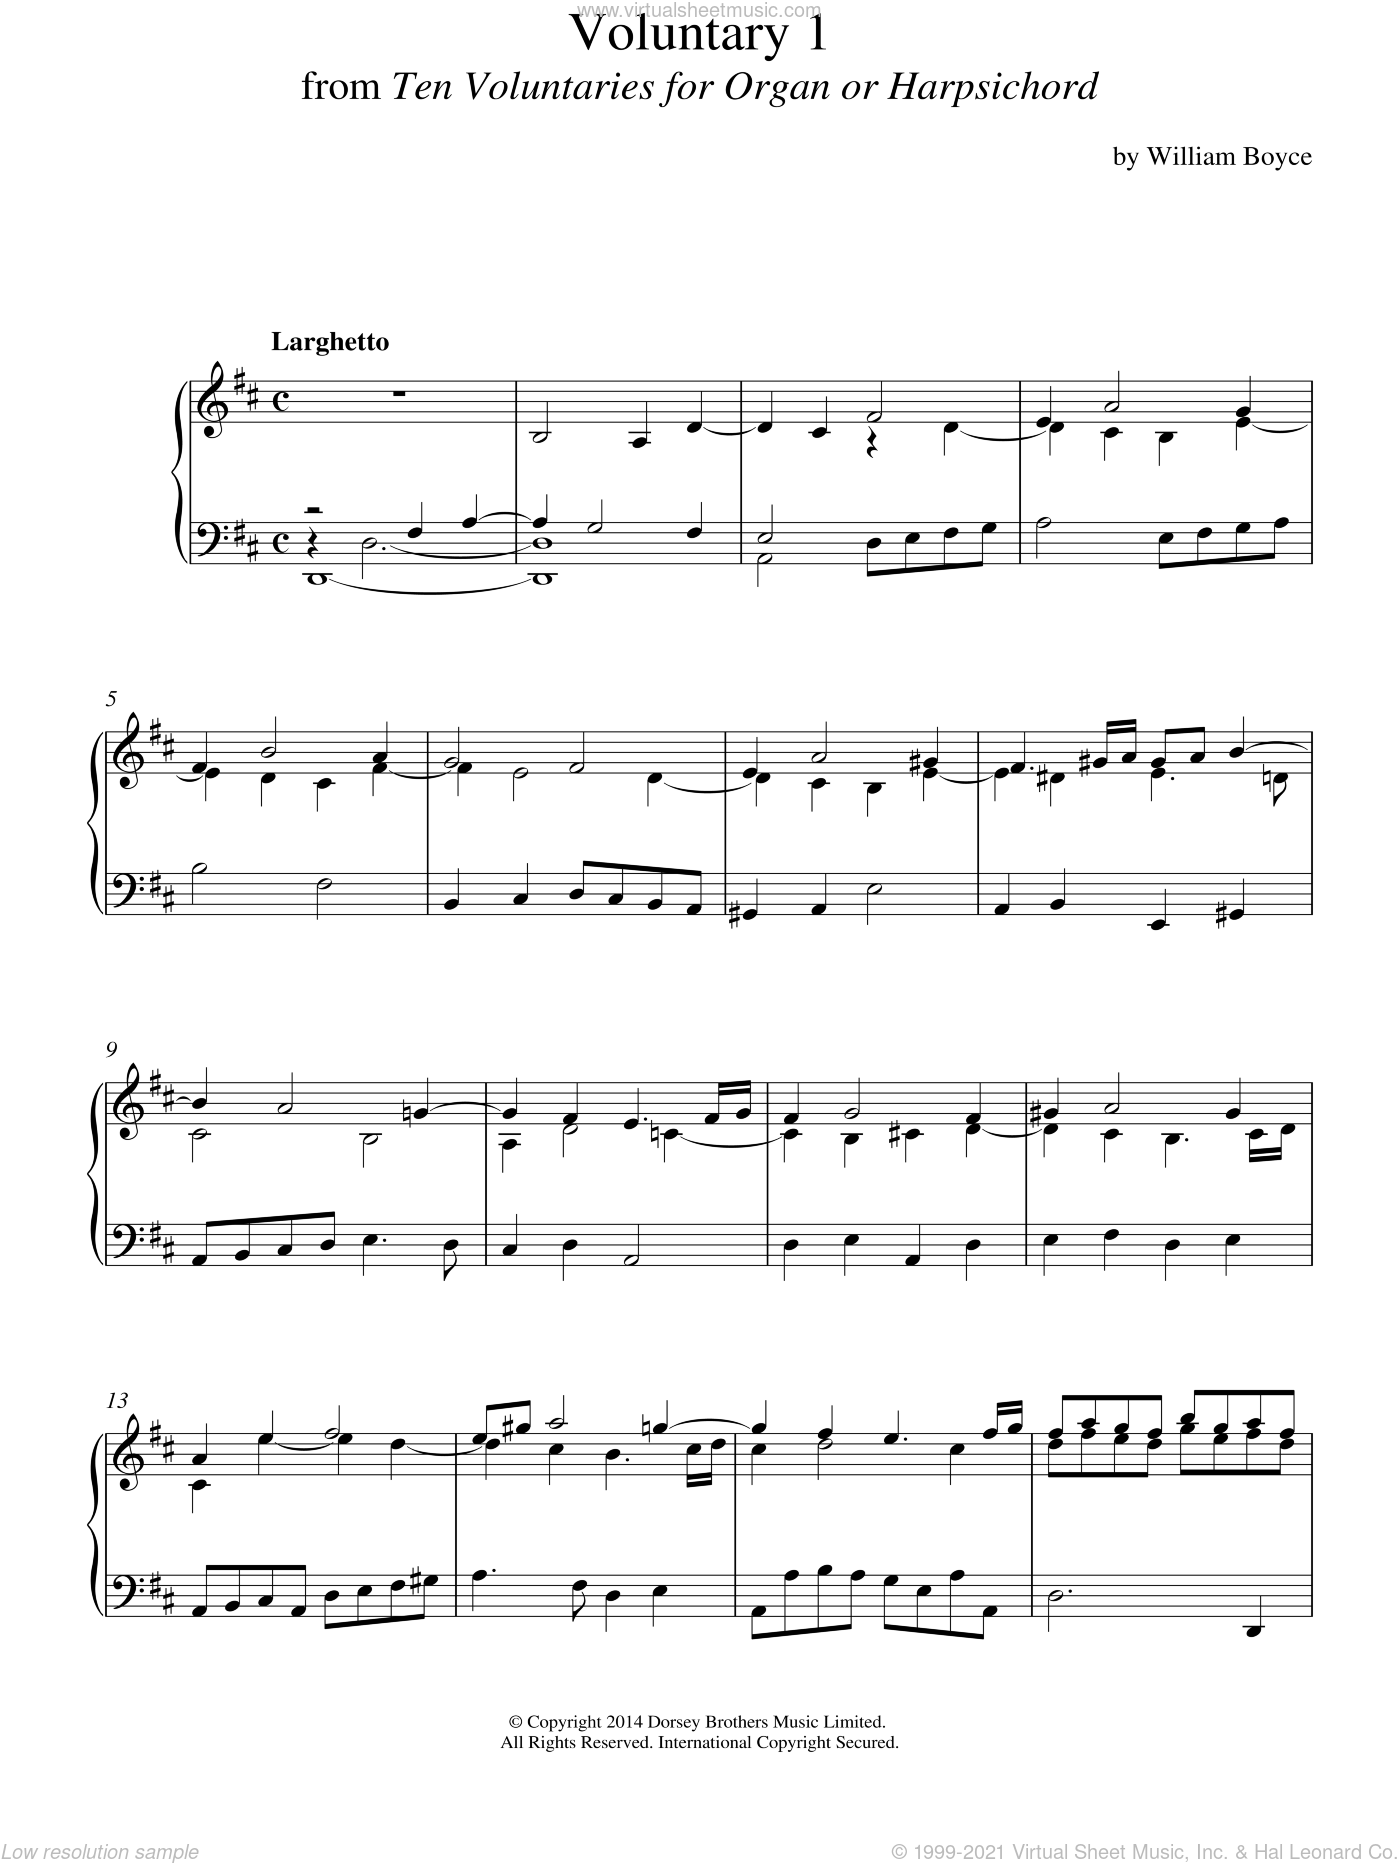 Voluntary 1 In D Major From 10 Voluntaries For Harpsichord sheet music for piano solo by William Boyce. Score Image Preview.